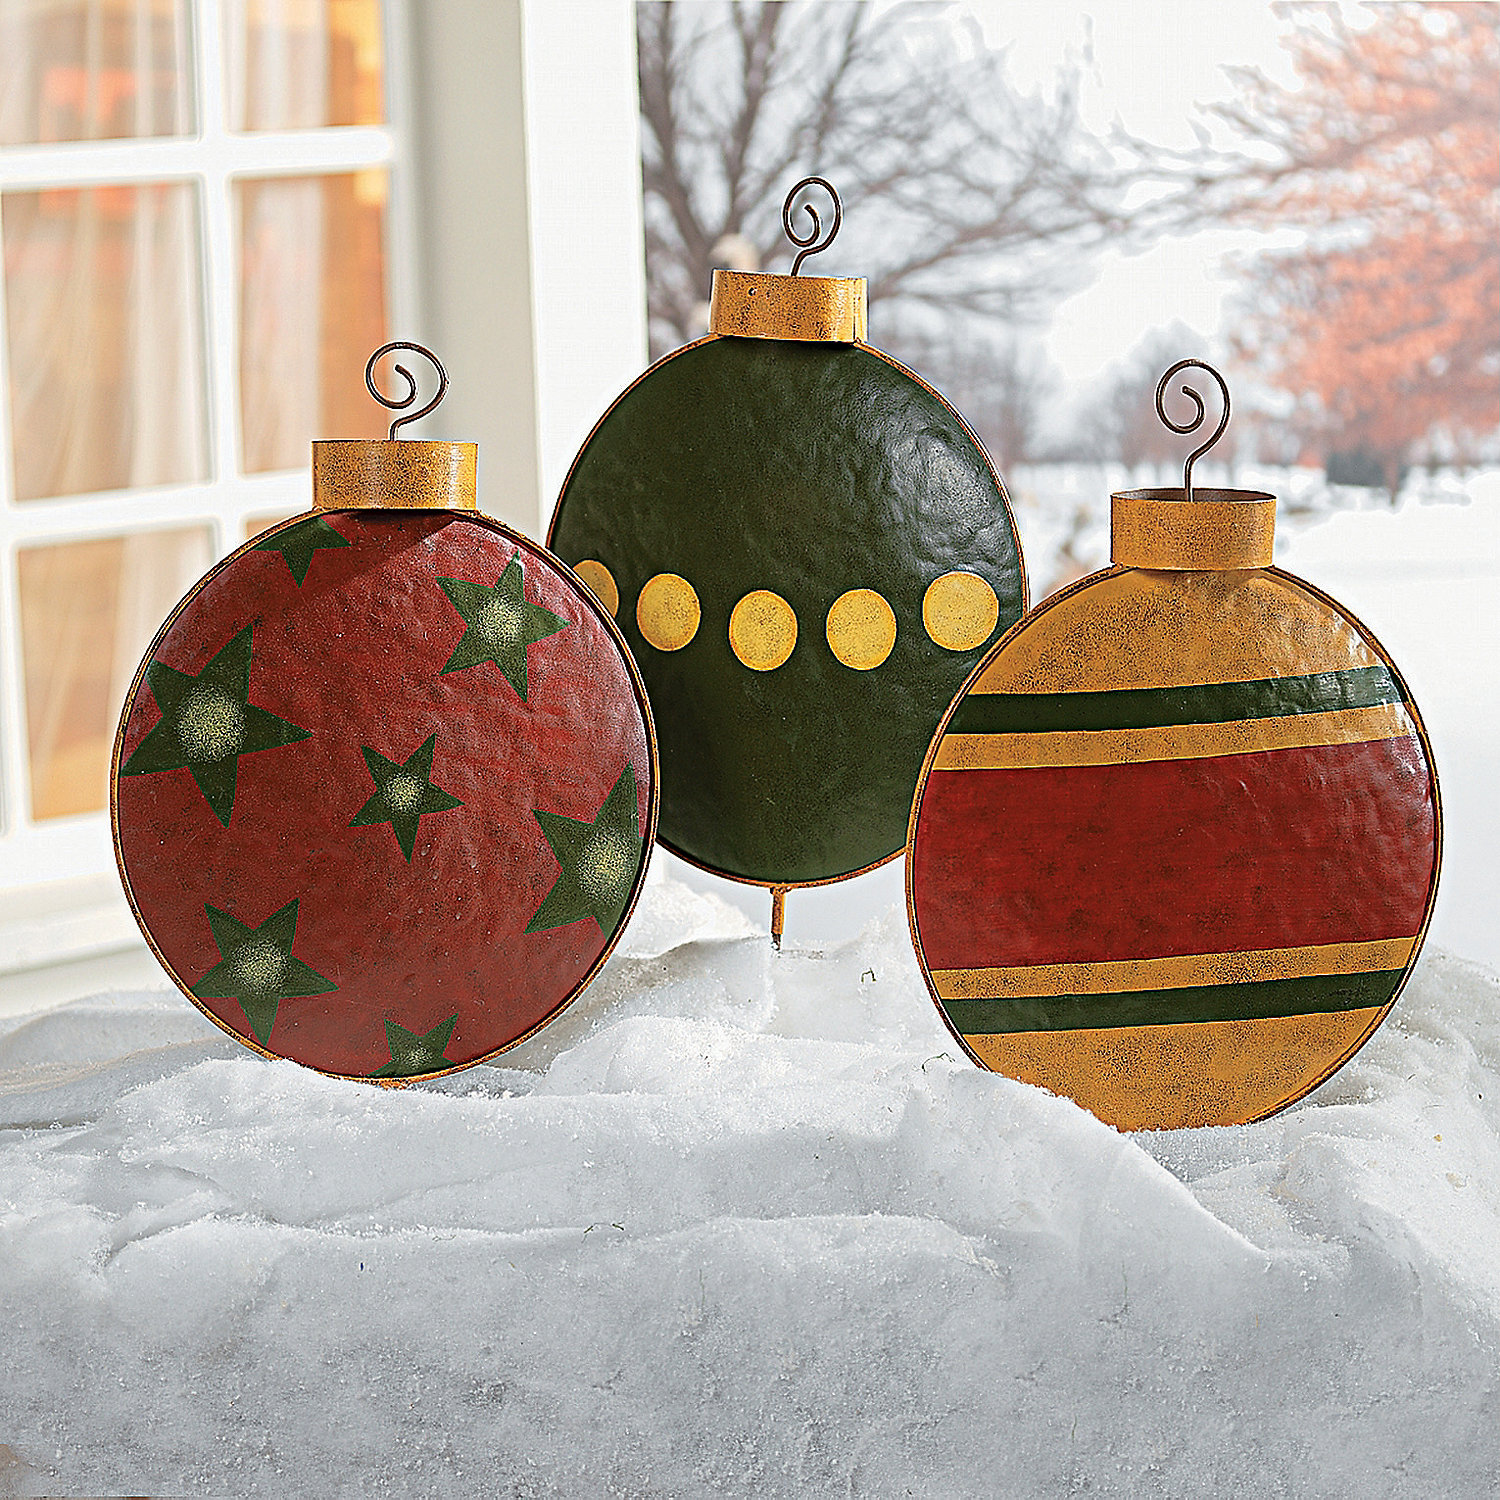 Home decor accents holiday decorations accessories for Holiday lawn decorations